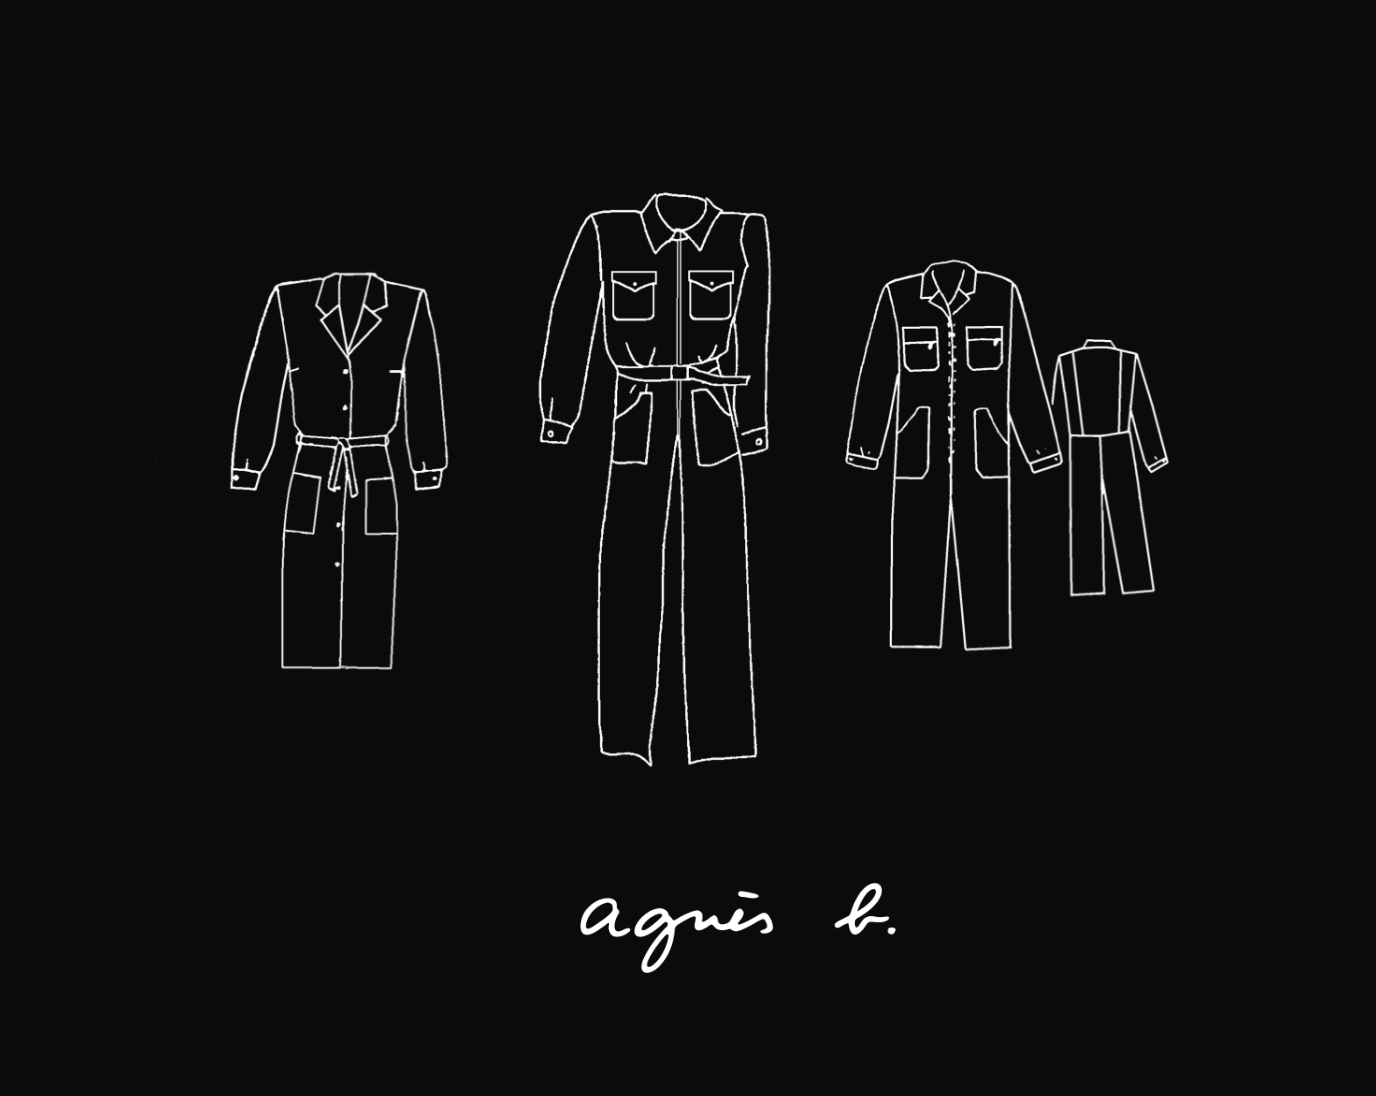 Agnès b logo with drawings of clothes